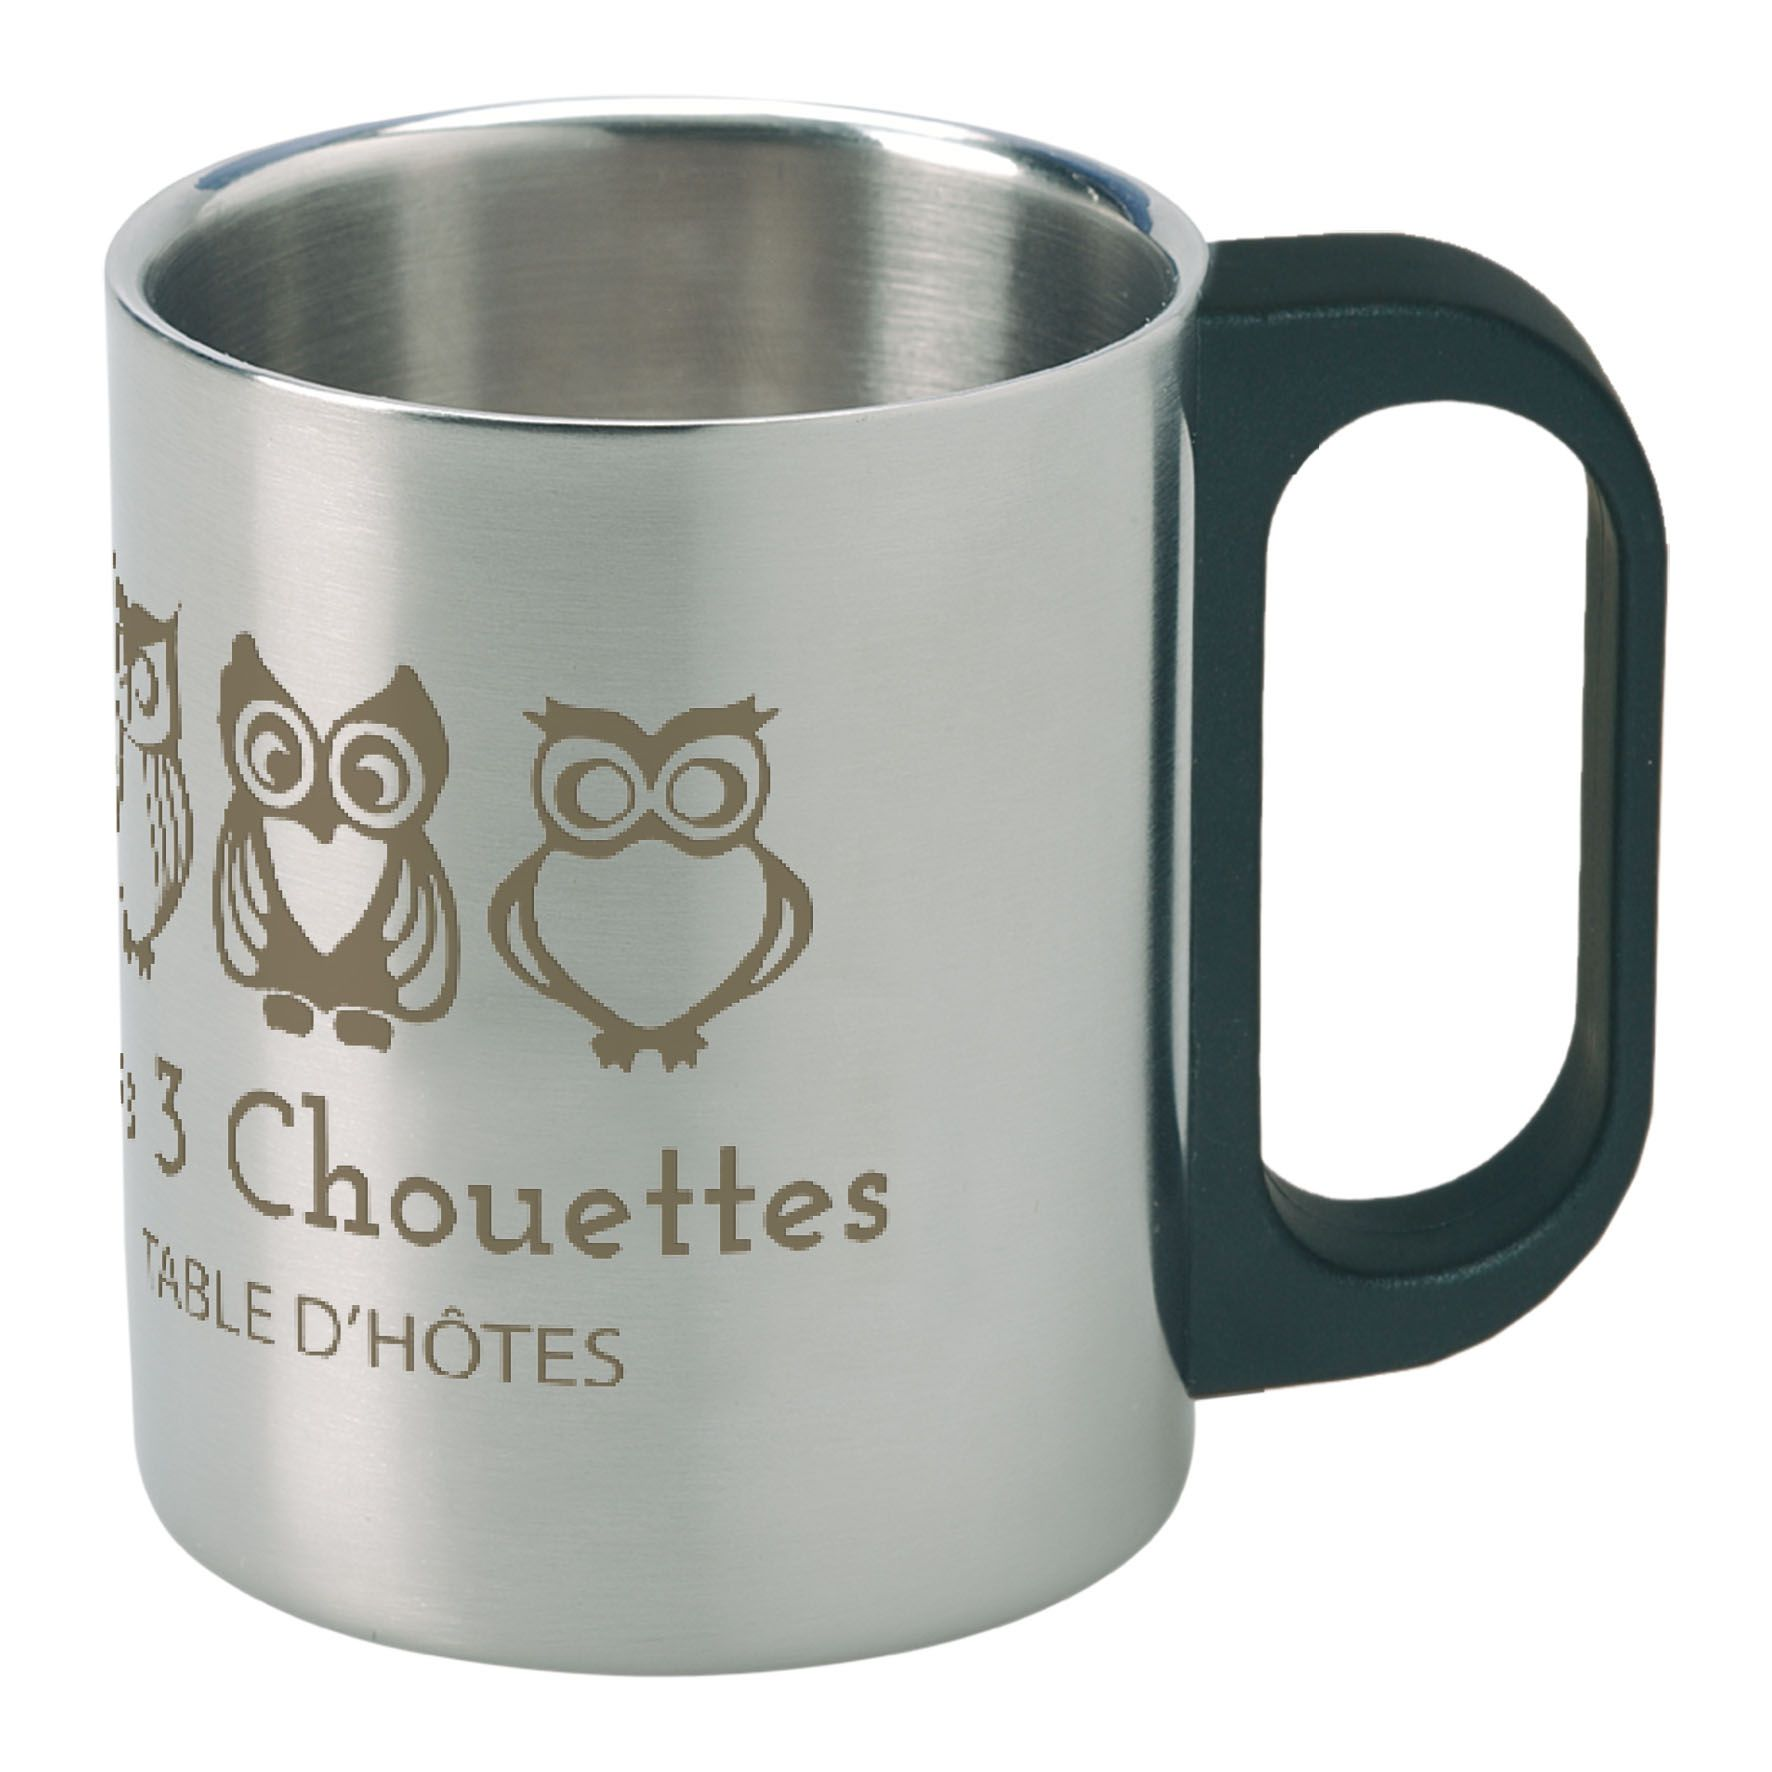 Objet publicitaire - Mug publicitaire isotherme inox 22cl Timbali